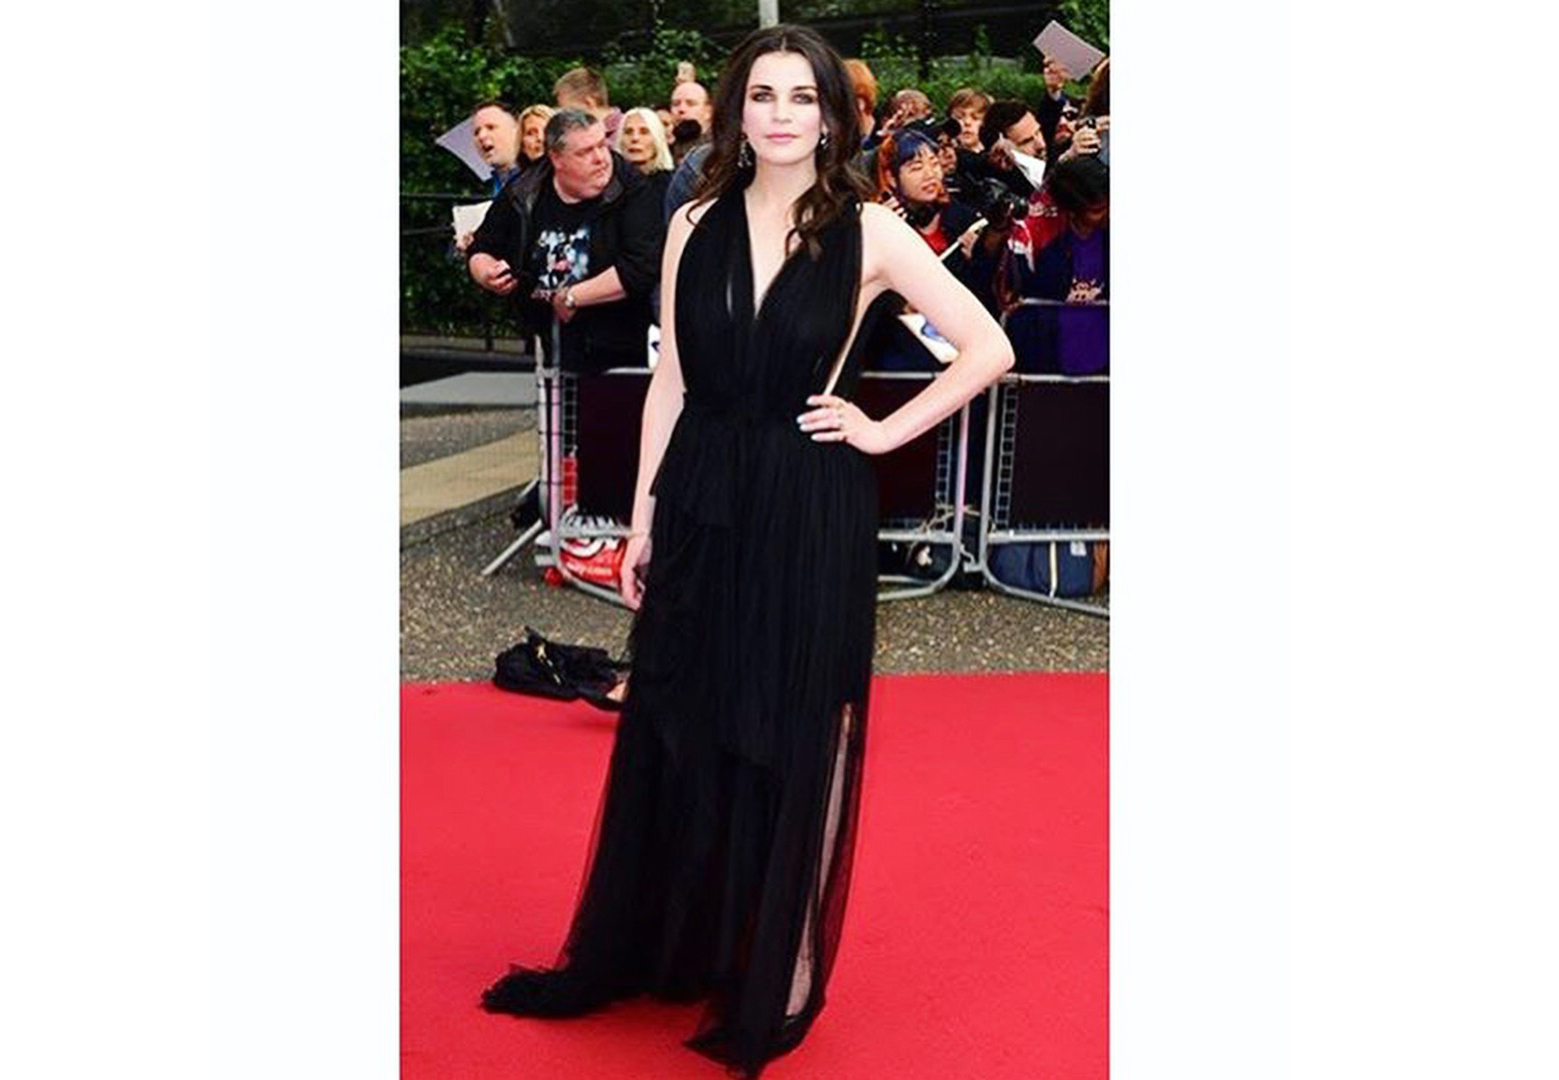 Aisling Bea wearing made to order silk tulle dress on the red carpet at the GQ awards.